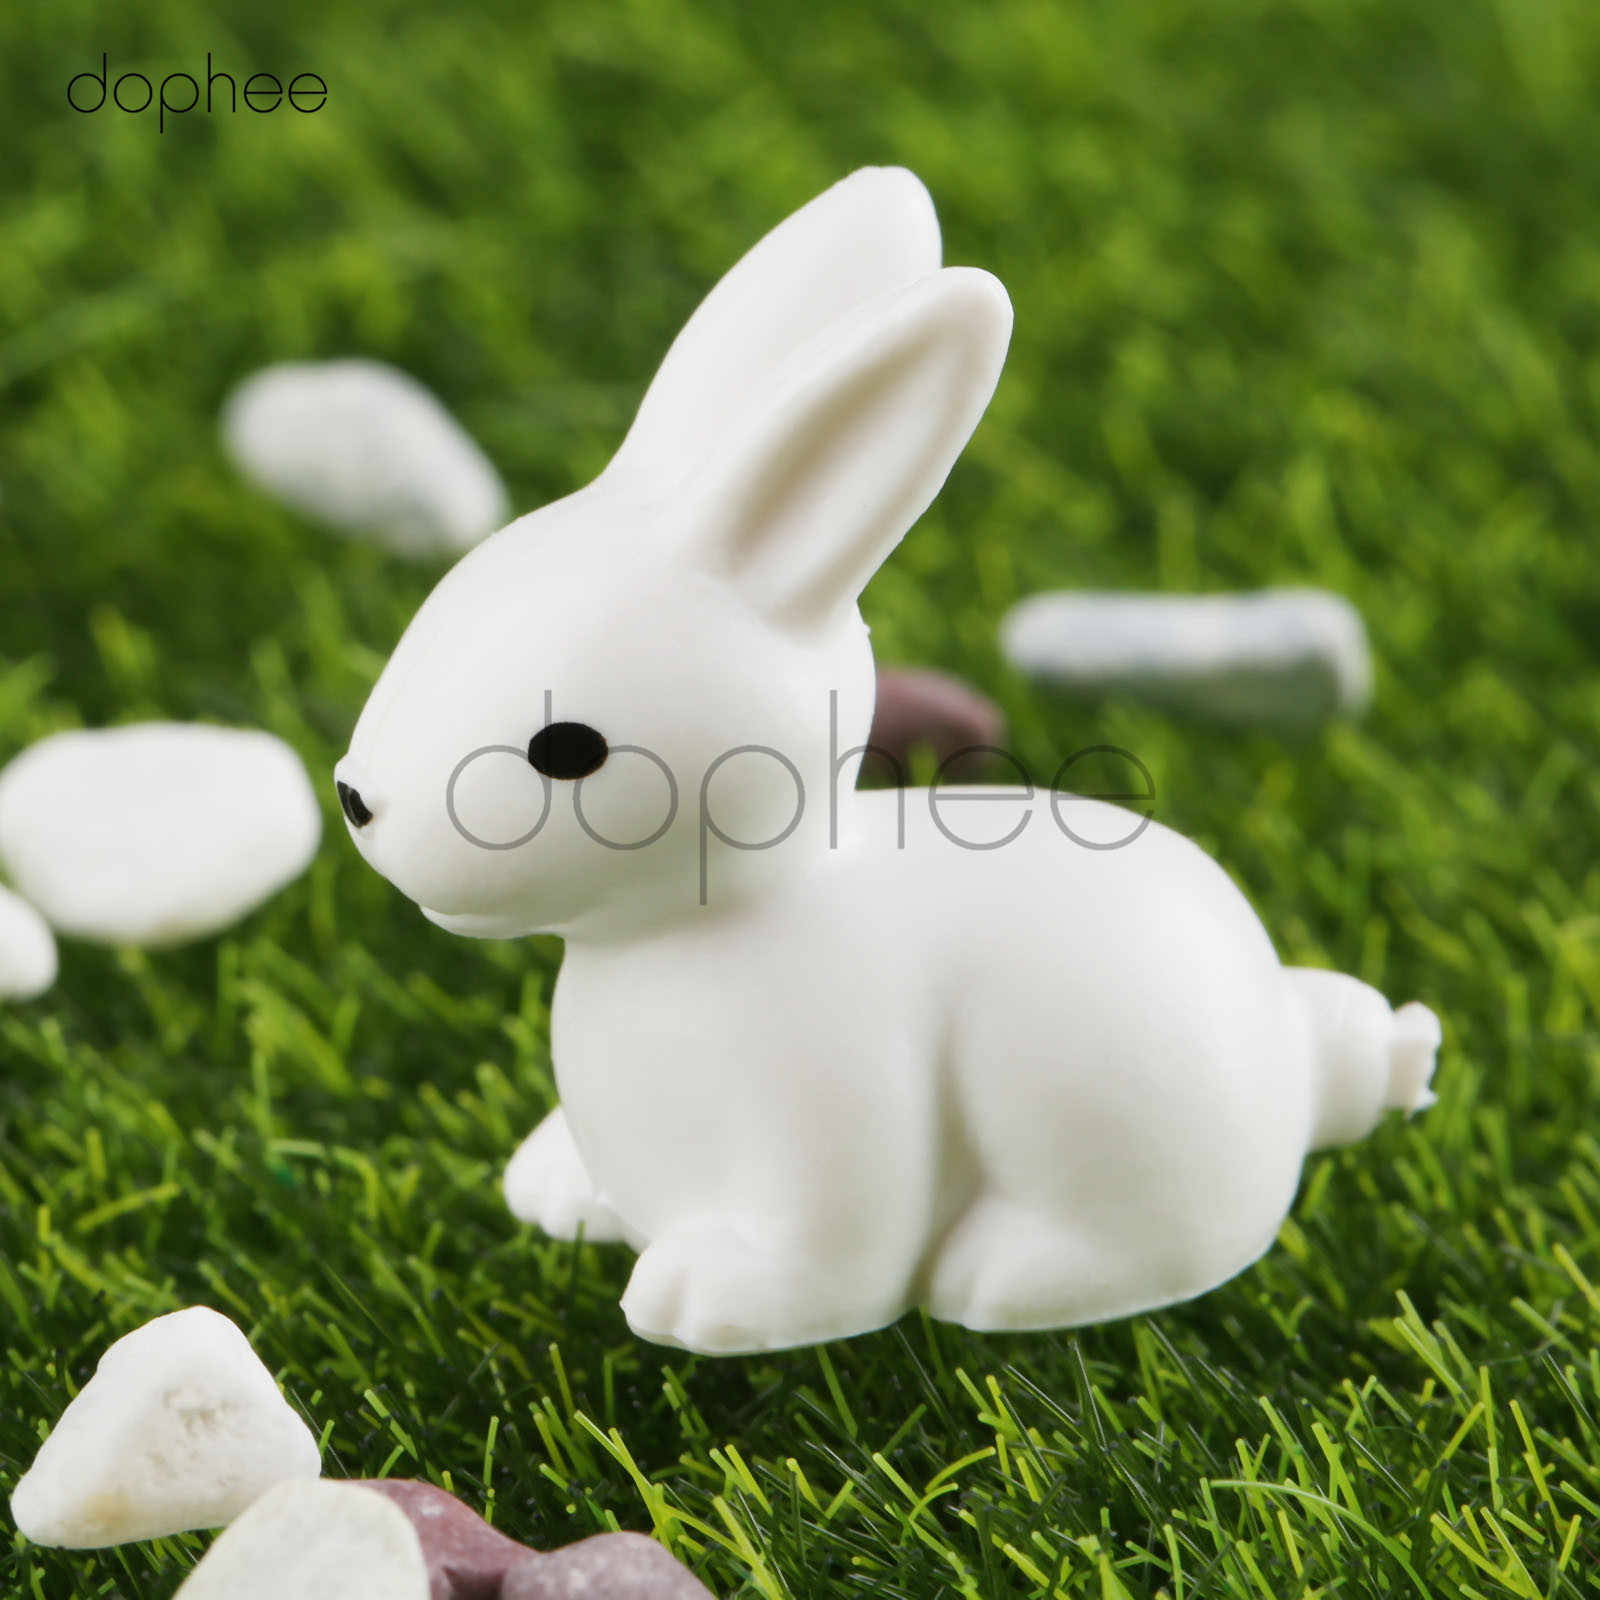 dophee 5pcs Rabbit miniature garden furniture hare Figurine animal home decoration accessories Decor plastic toy Gift For Kids